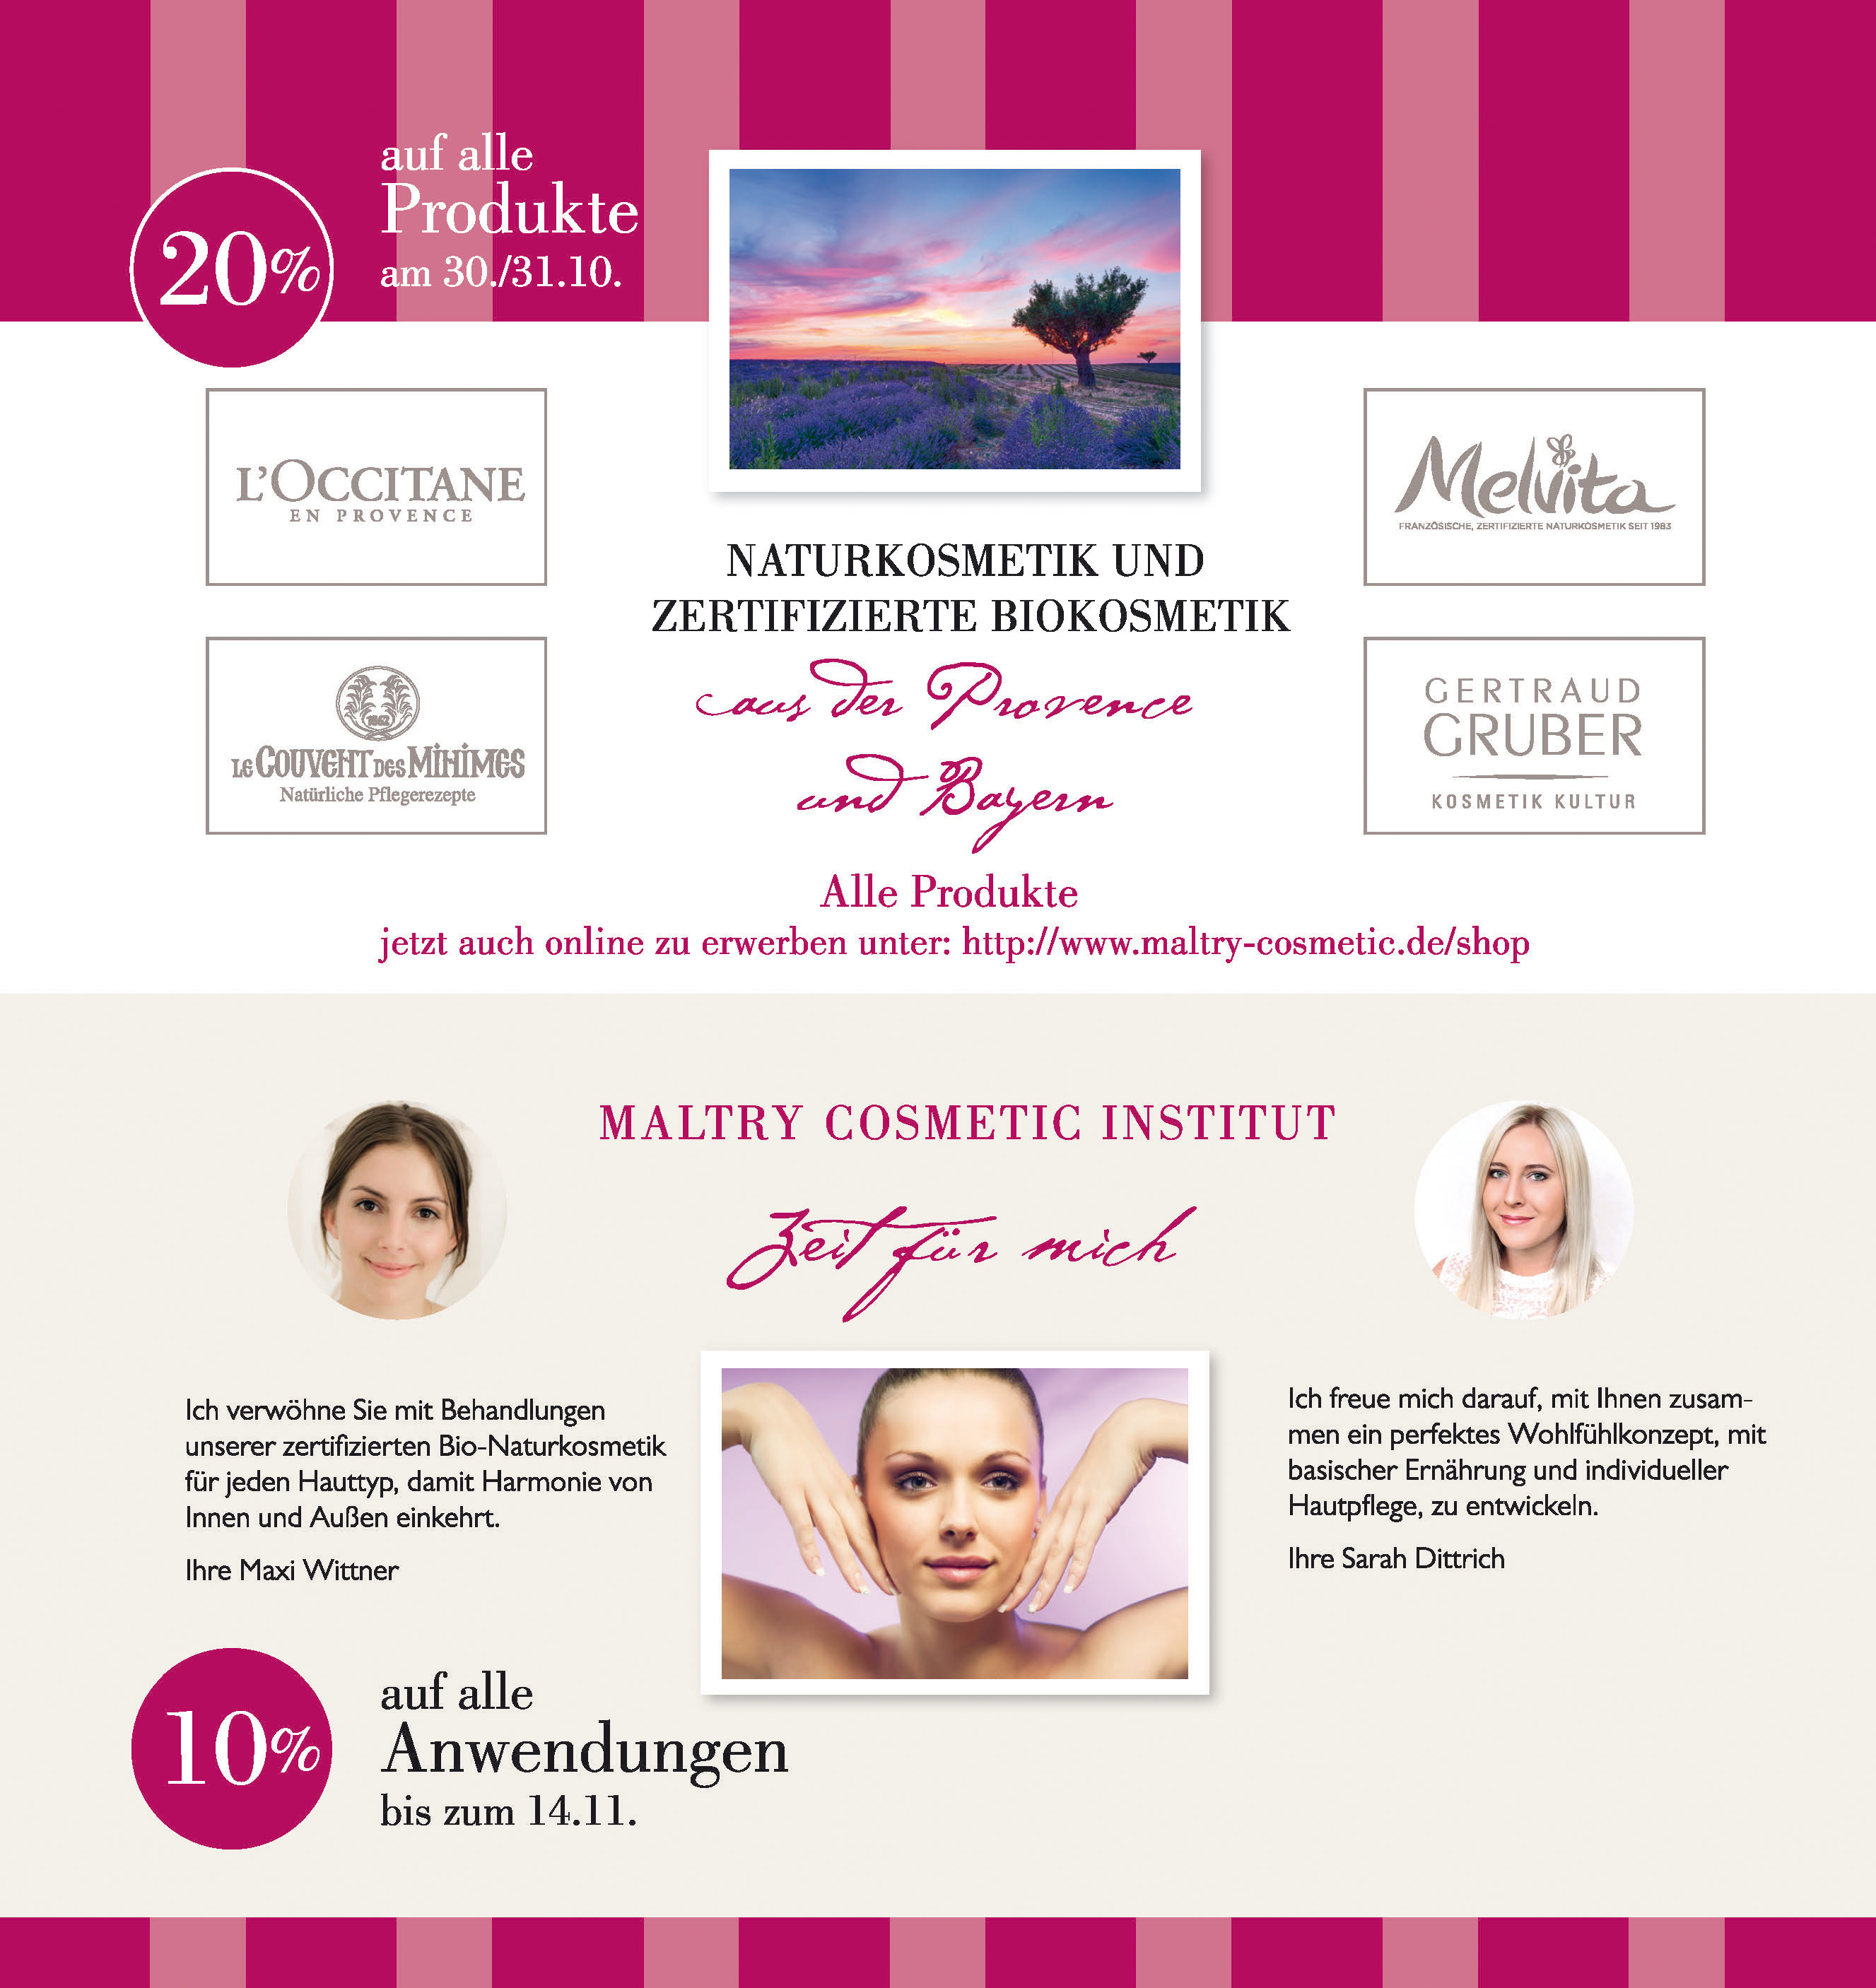 maltry-cosmetic-muenchen-specials2.jpg